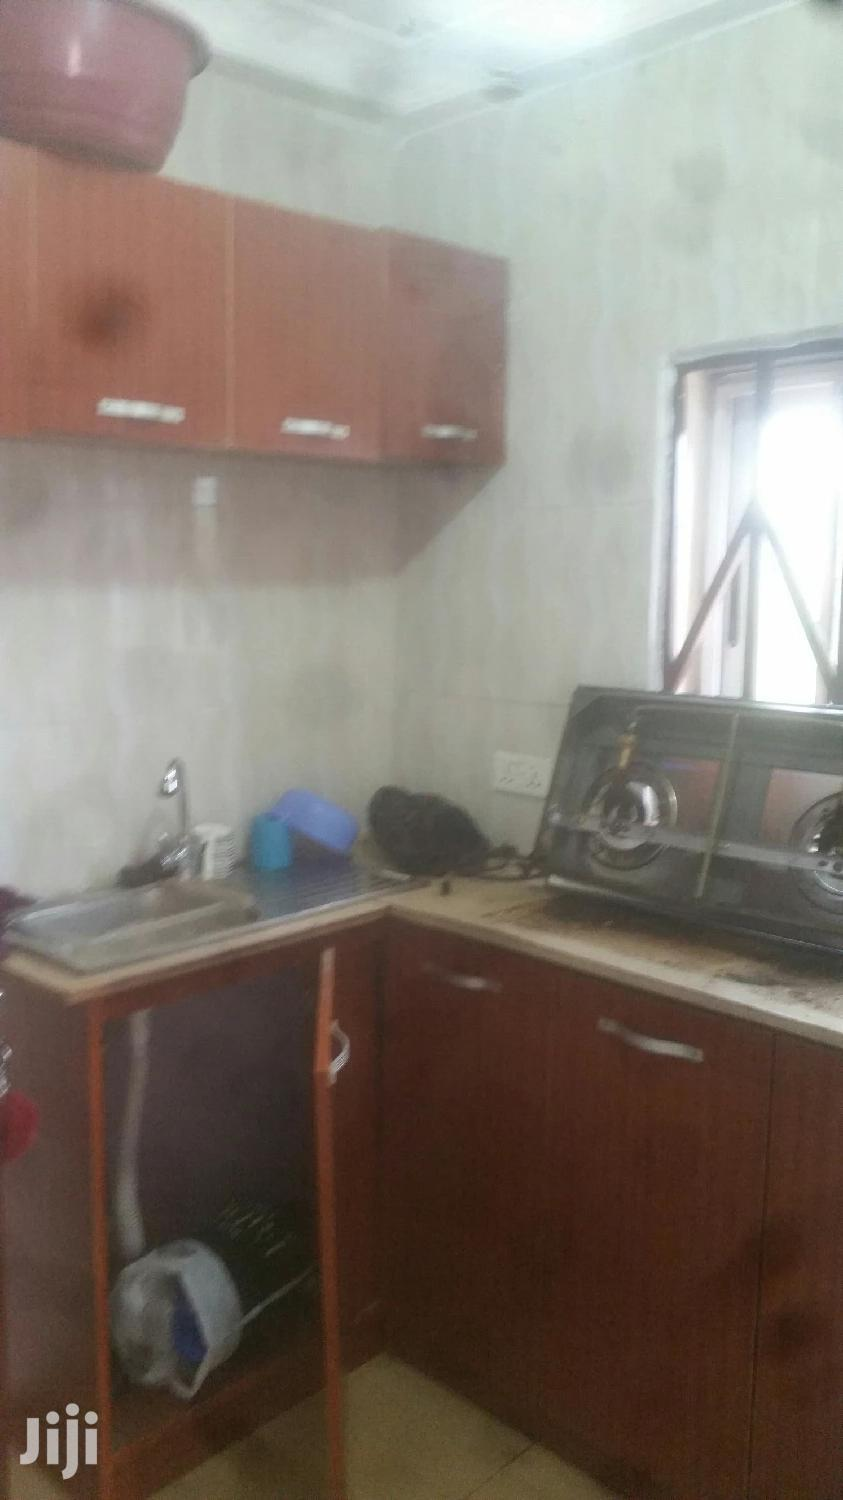 Executive Single Room S / C | Houses & Apartments For Rent for sale in Achimota, Greater Accra, Ghana